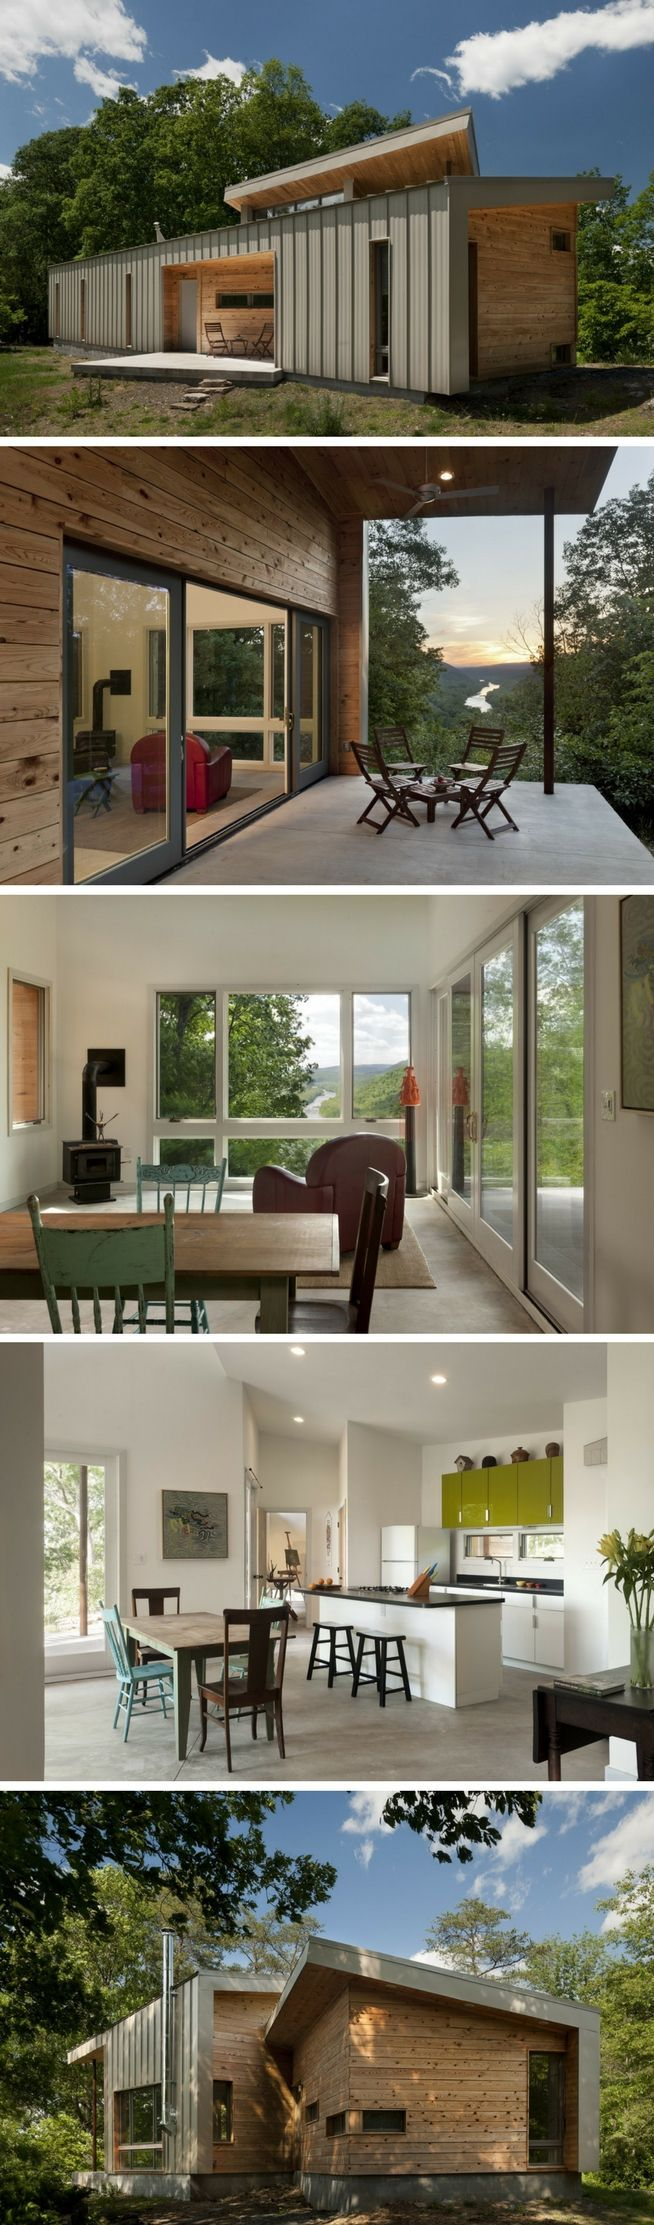 THE RIDGE SHIPPING CONTAINER HOUSE #ContainerHomeDesigns